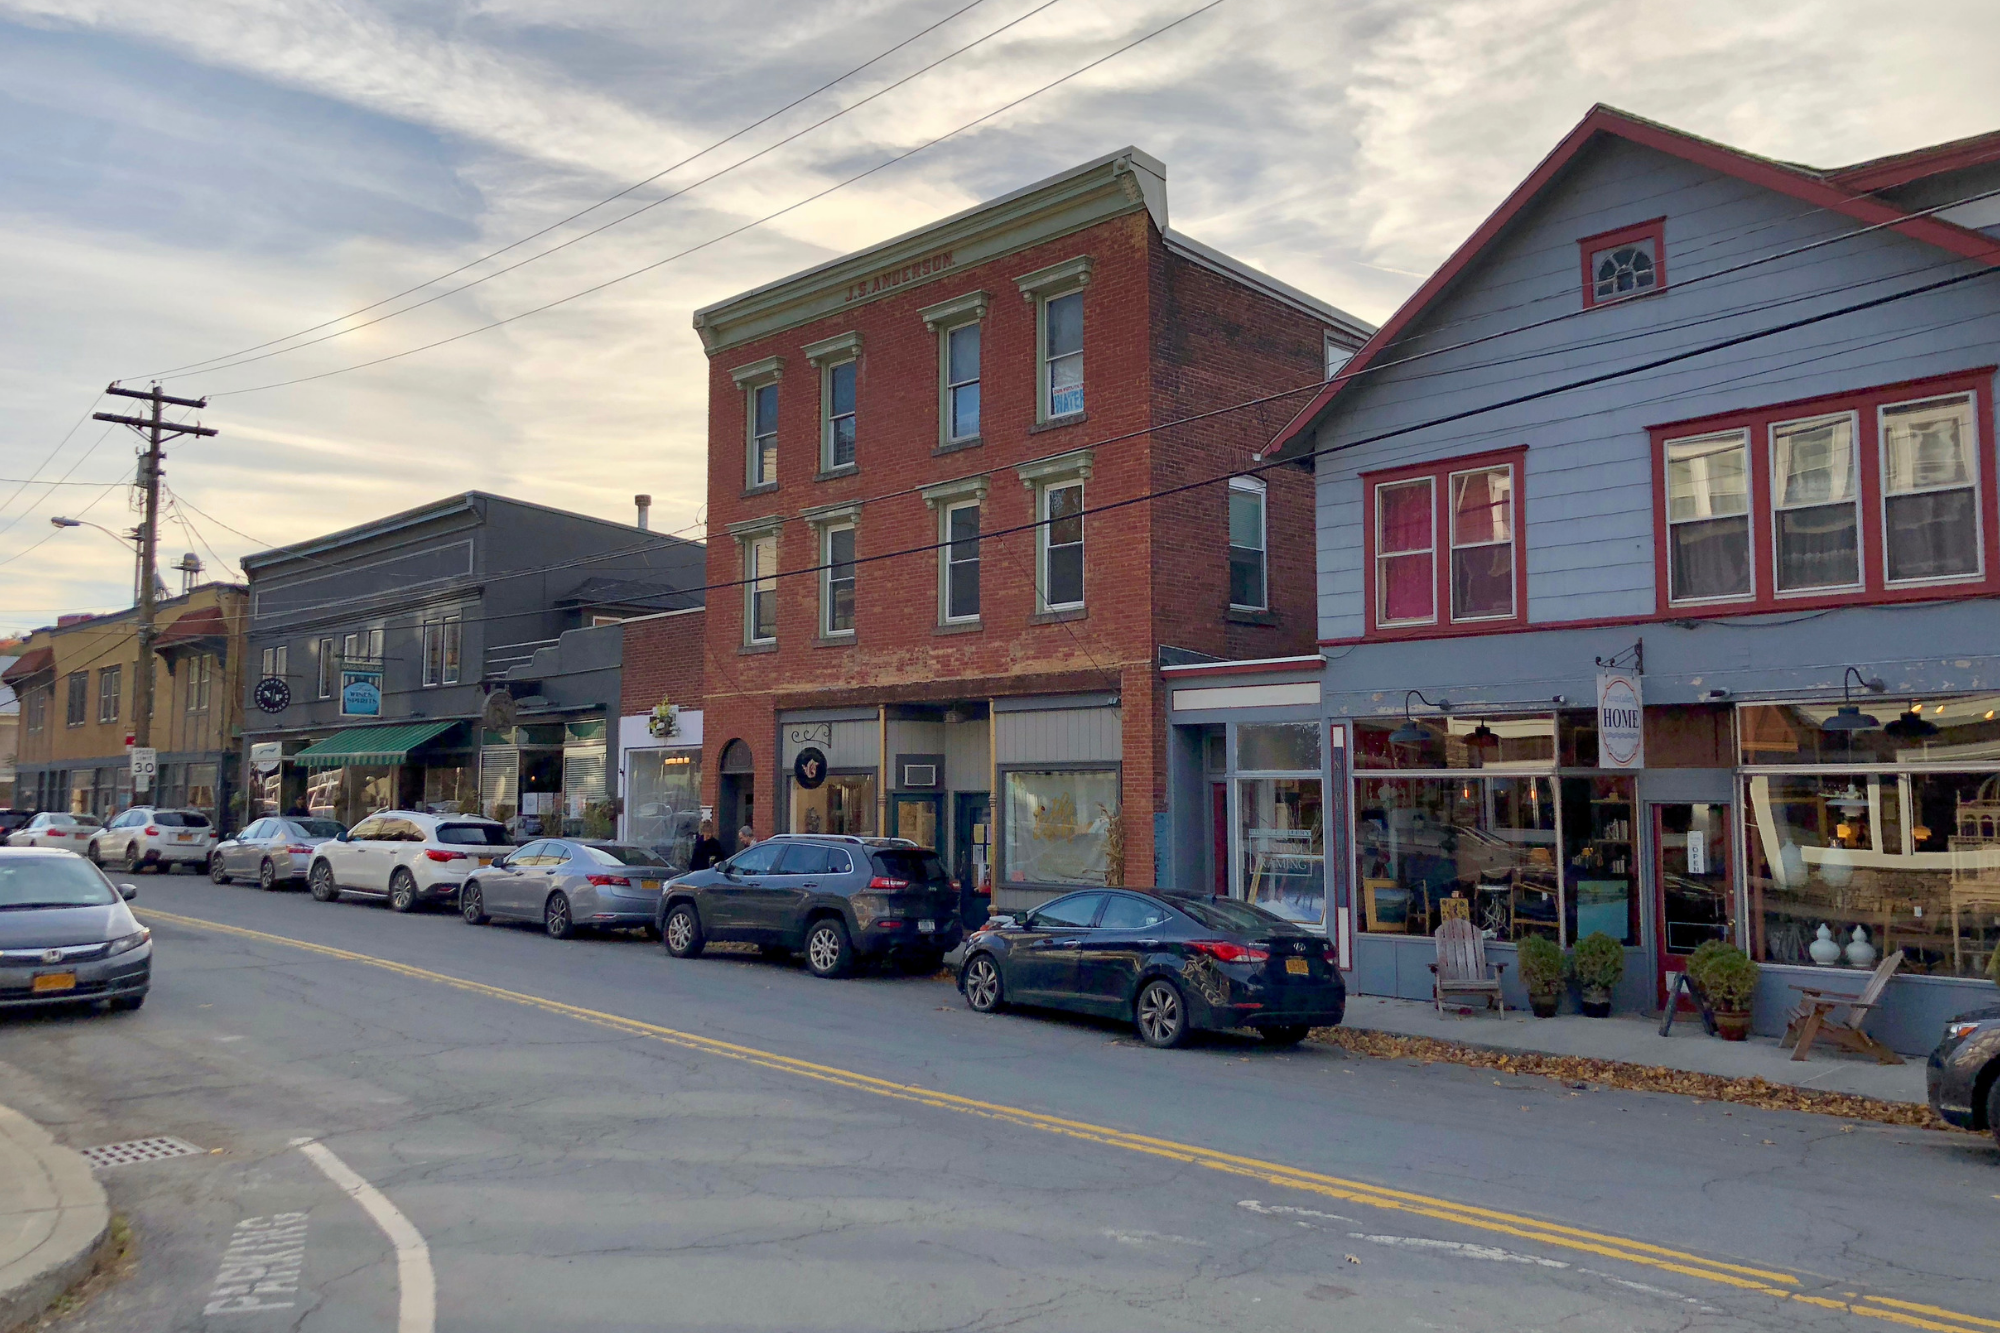 Main Street, Narrowsburg, NY